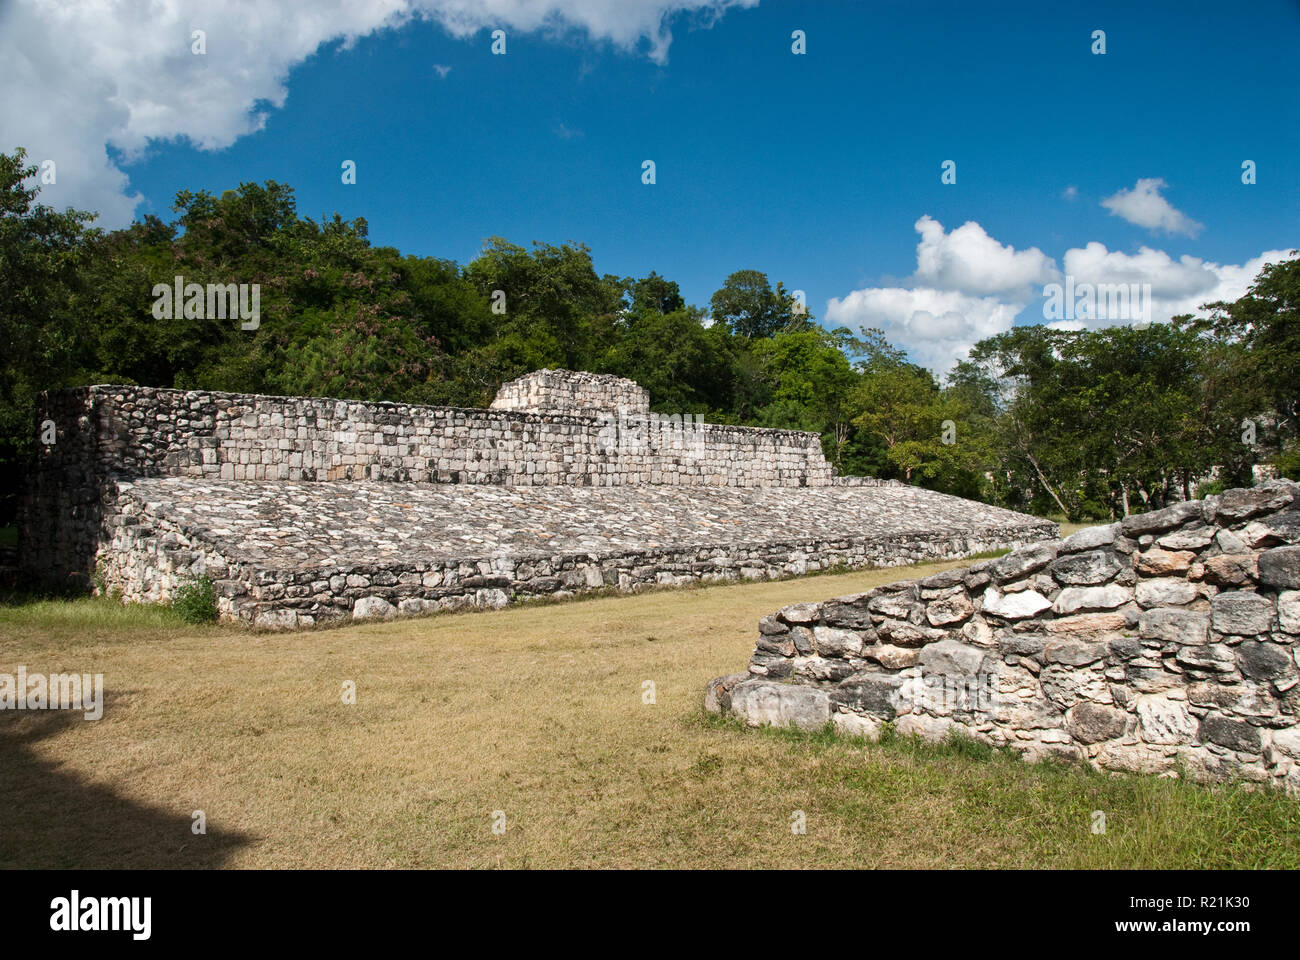 A Mesoamerican ballcourt at Ek Balam (Black Jaquar), a Mayan archaeological site in Yucatan, Mexico. - Stock Image